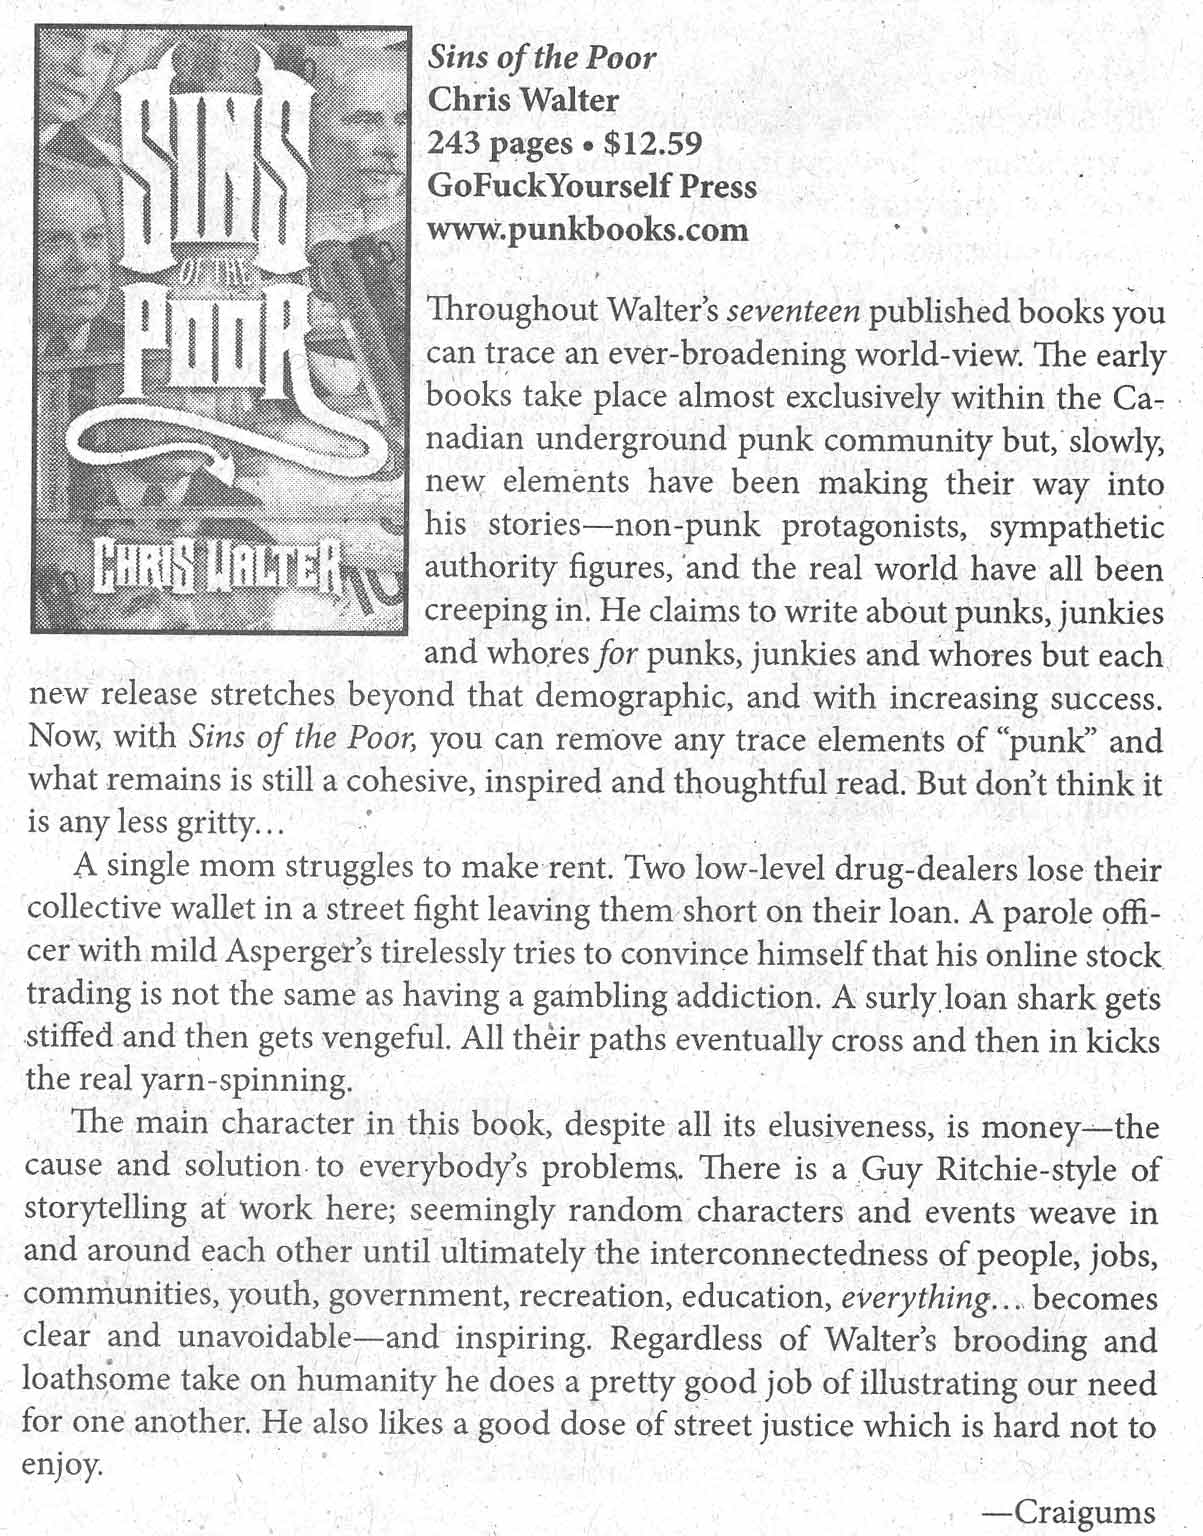 MRR Sins of the Poor review - Spring 2011